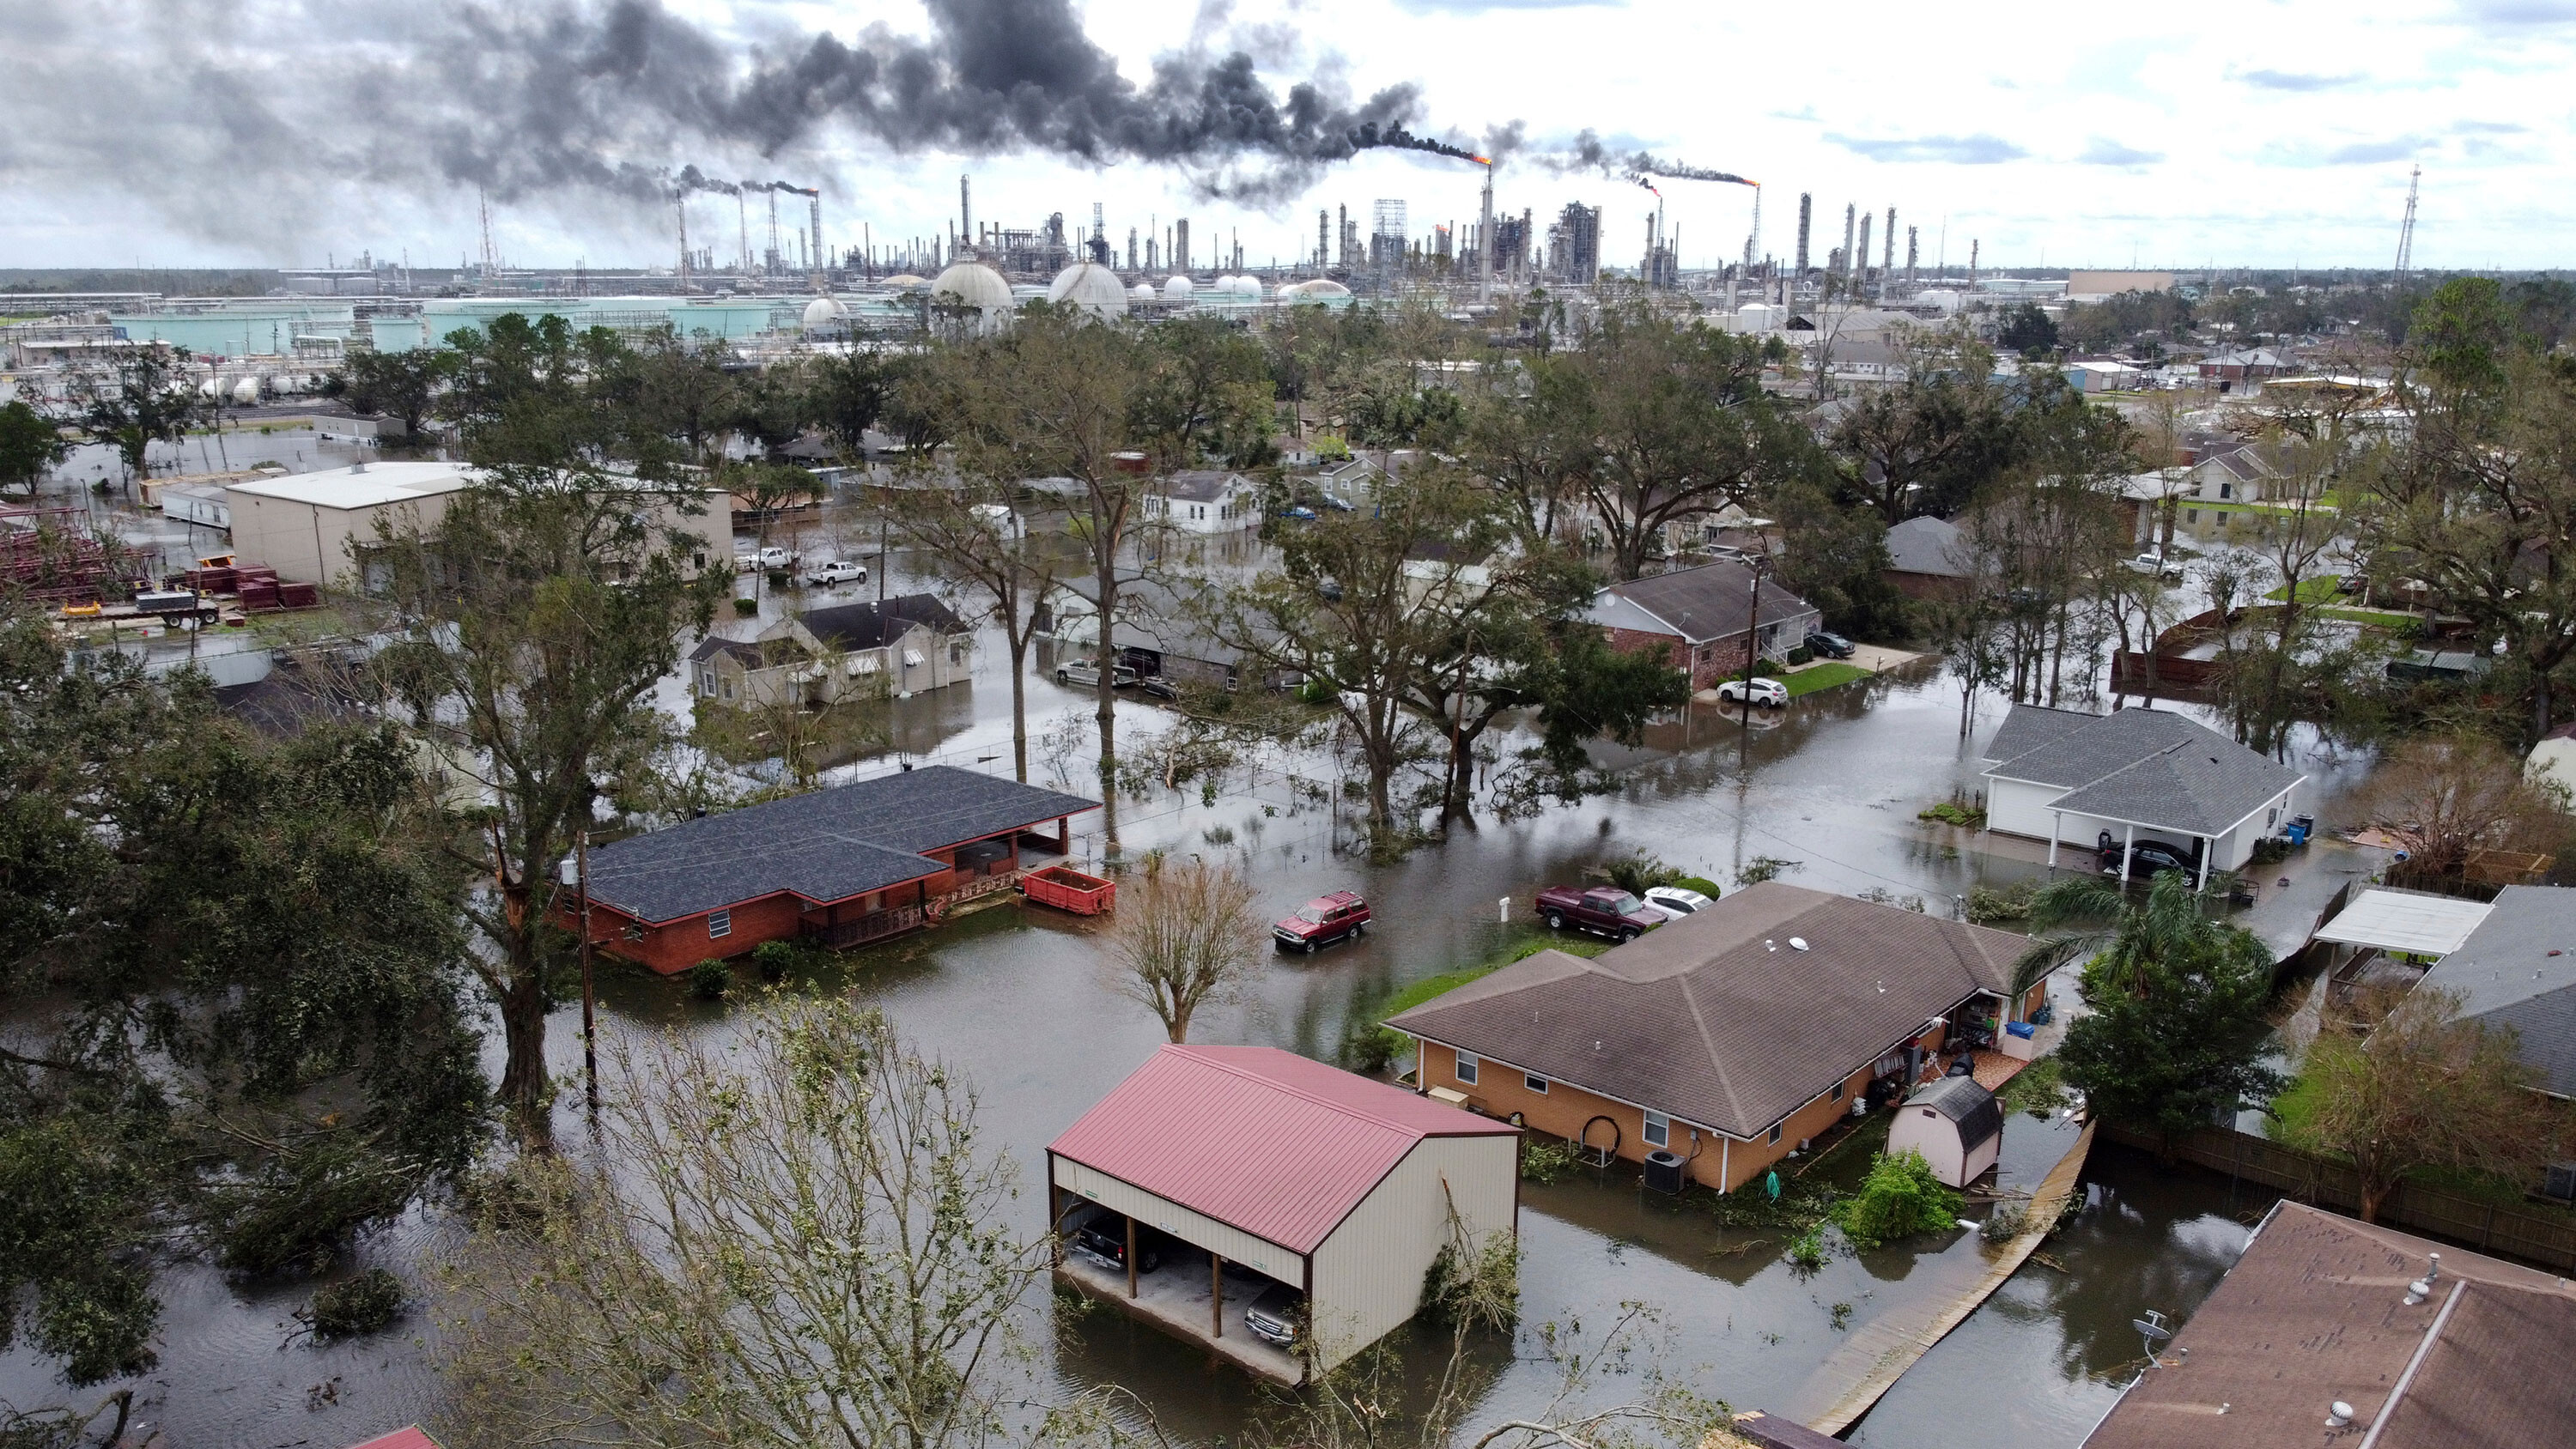 Hurricanes, wildfires, and drought: US finds itself battling climate disasters on several fronts